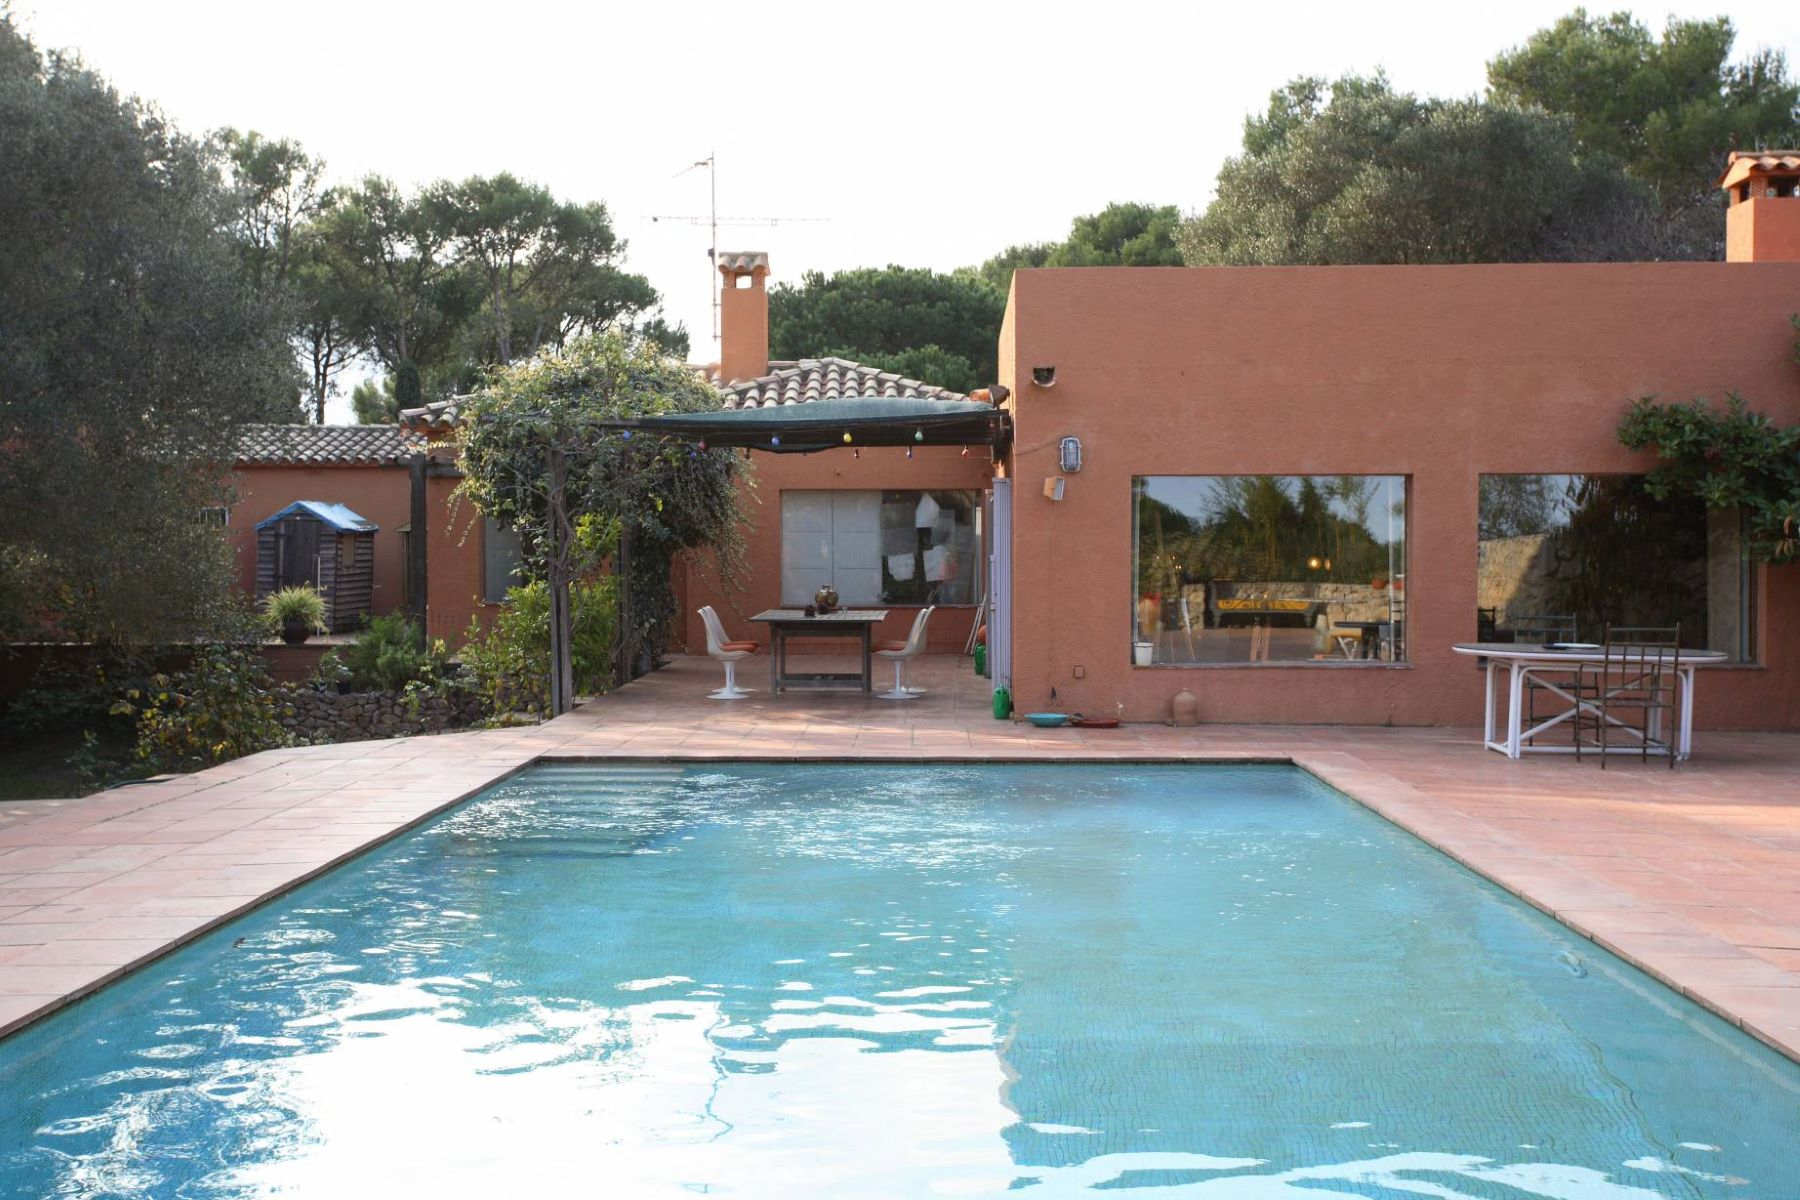 Single Family Home for Sale at Large property in Empuries located in the beach area L Escala, Costa Brava, 17130 Spain